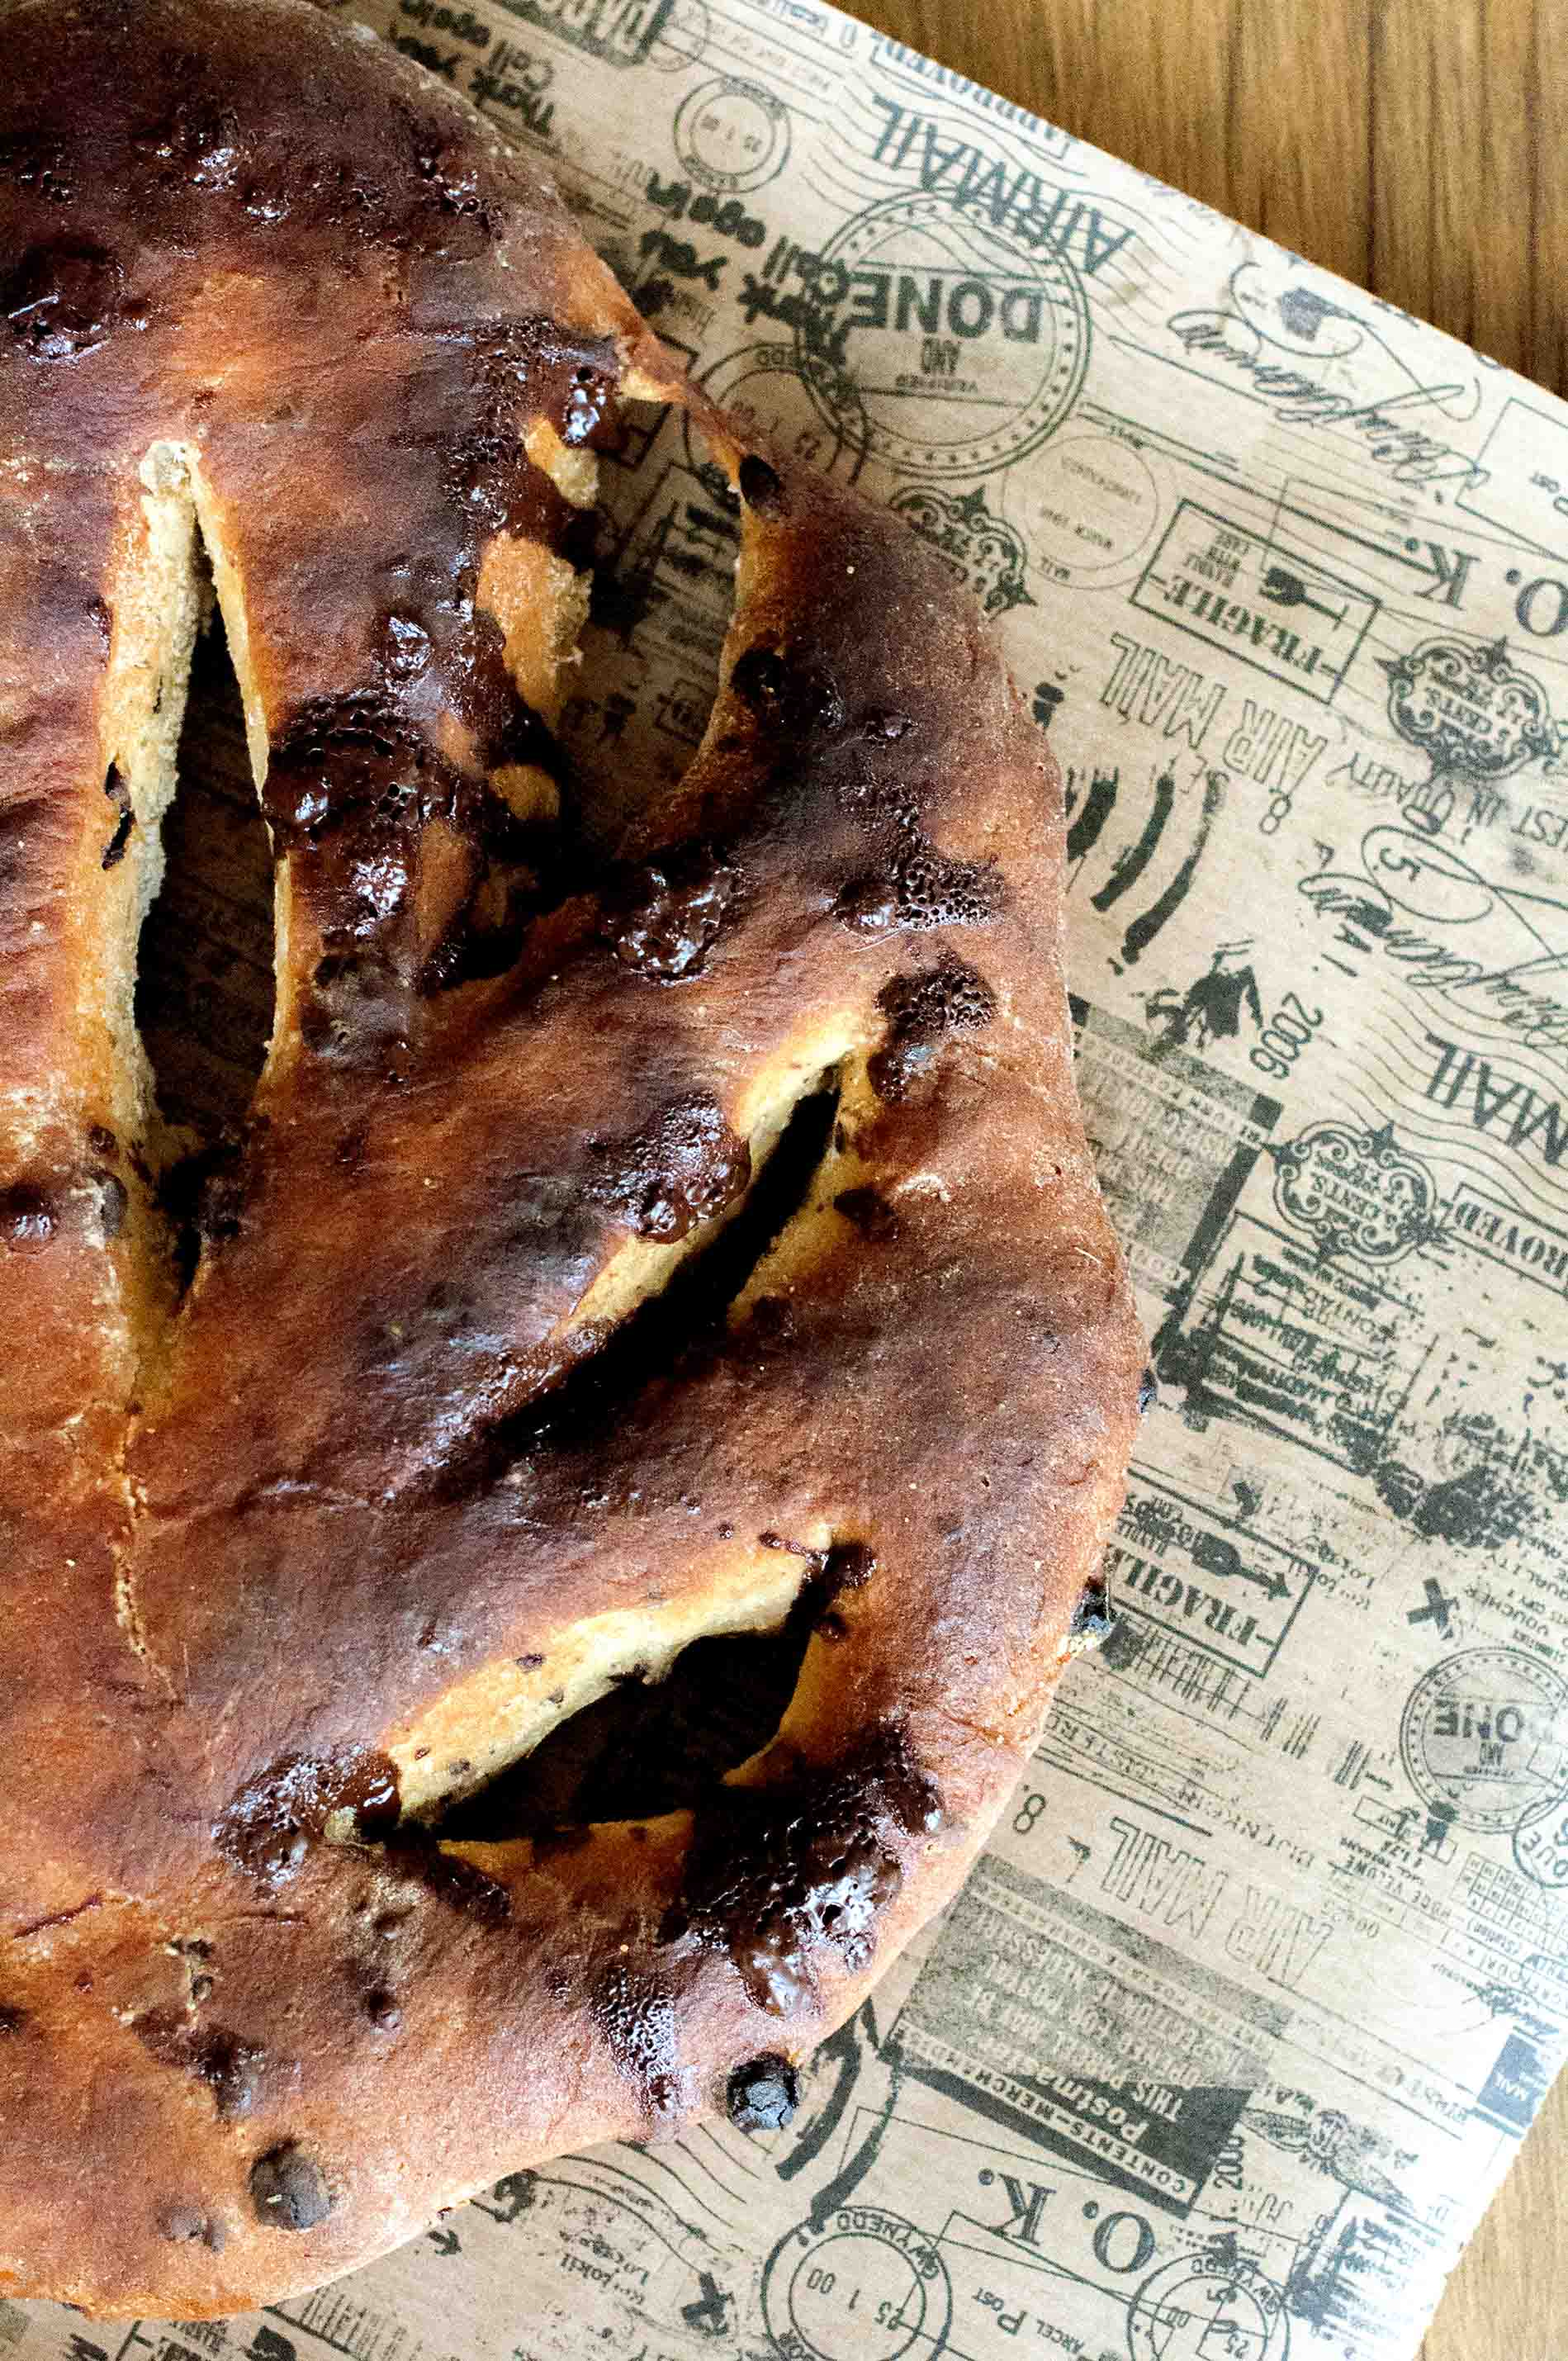 Chocolate Lemon Fougasse